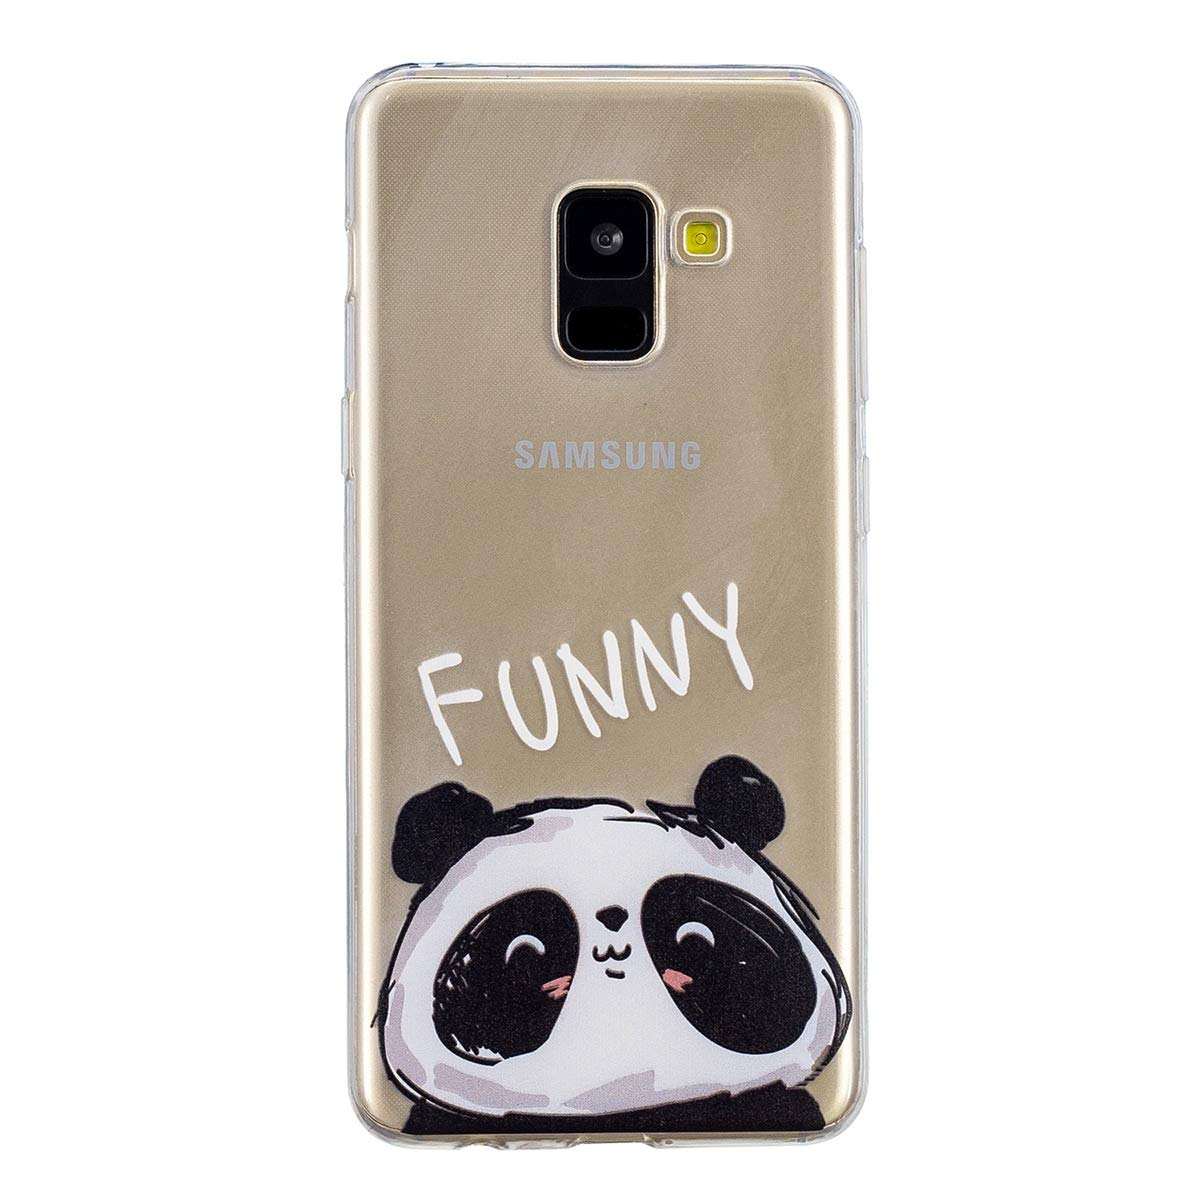 Galaxy A8 2018 Case, Yoodi Ultra Slim Lovely Cover for Samsung Galaxy A8 2018 5.6 inch Flexible TPU Shock Absorption Bumper Drop Protection Shell - Comic YDA366626